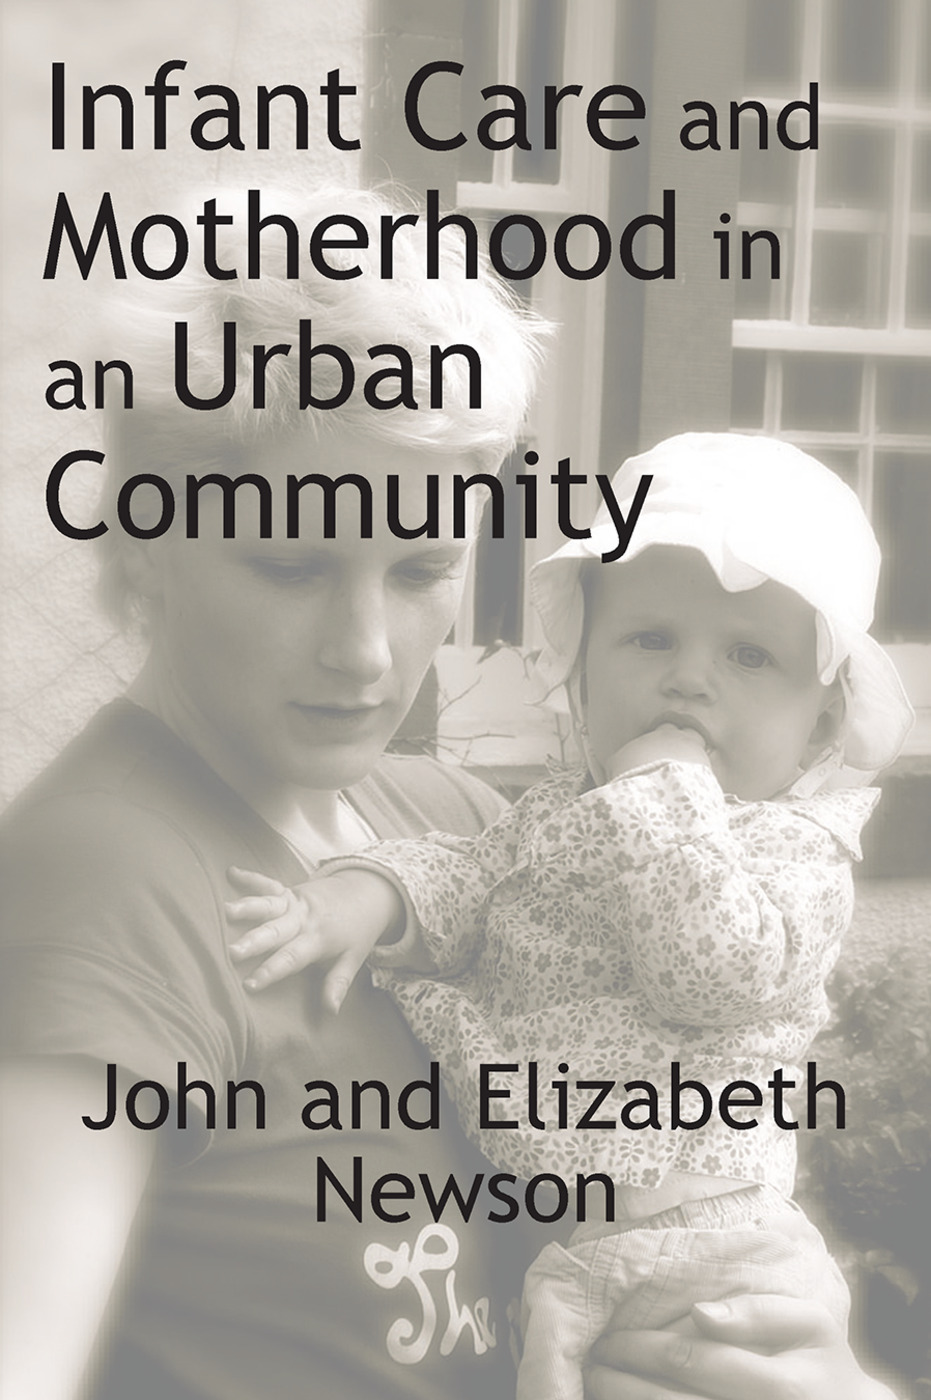 Infant Care and Motherhood in an Urban Community